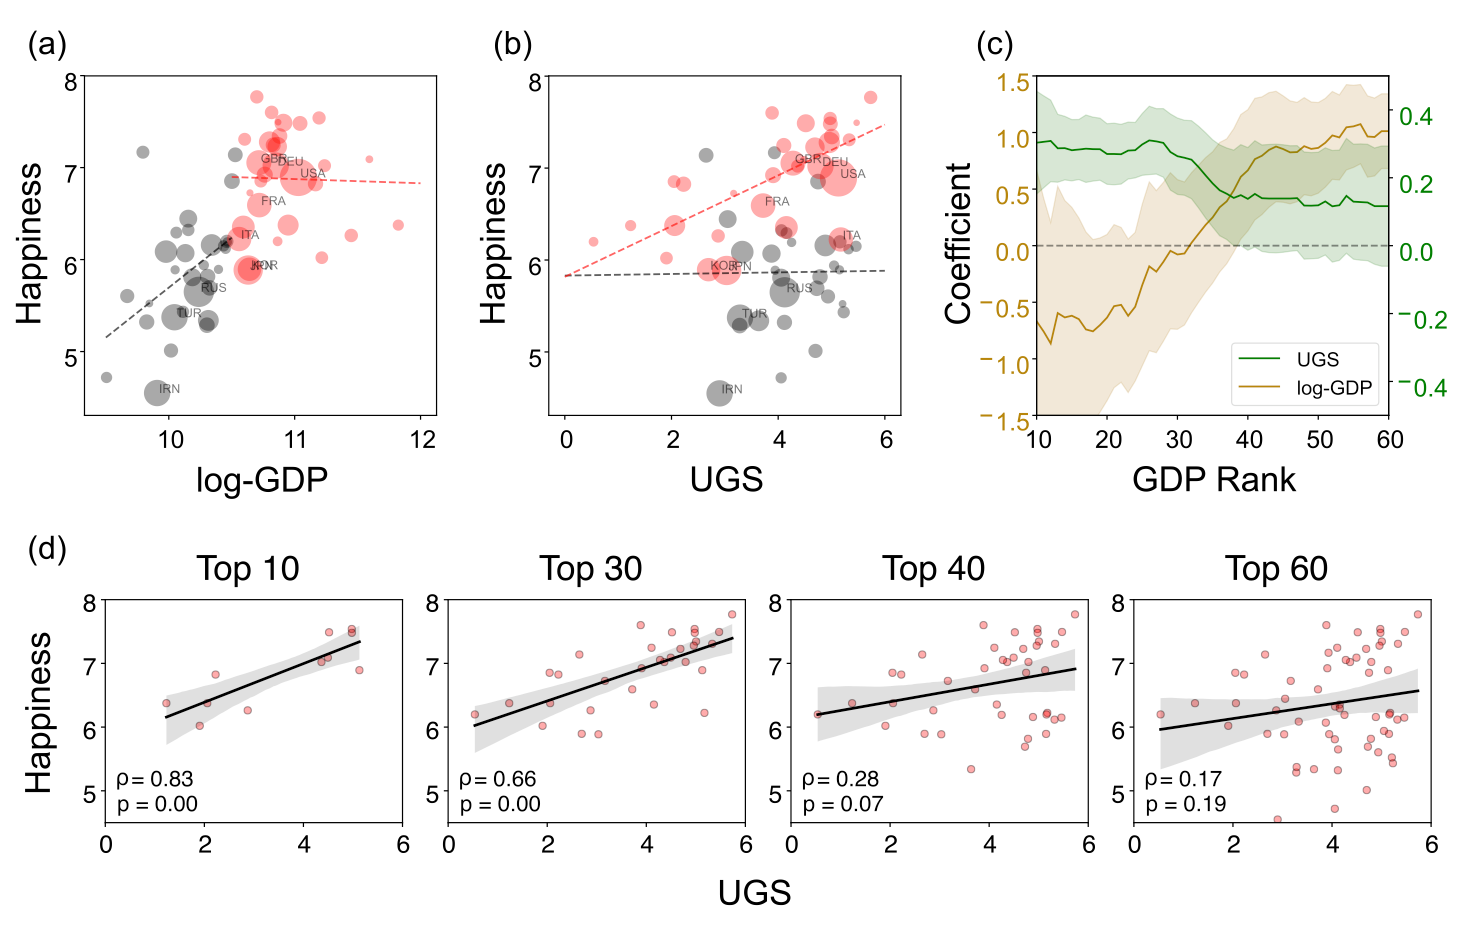 The relations of (a) log-GDP and happiness, and (b) urban green space (i.e., UGS) and happiness across 60 developed countries. The top 30 and the lowest 30 countries ranked by GDP are sized by the population size and colored by red and black. The dotted lines are the linear fit for each GDP group. (c) Changes of coefficients between urban green space and happiness for different sets of GDP rank with increasing window size from top 10 to 60. (d) The rank correlations between UGS and happiness for the groups of countries in the increasing GDP rank order.